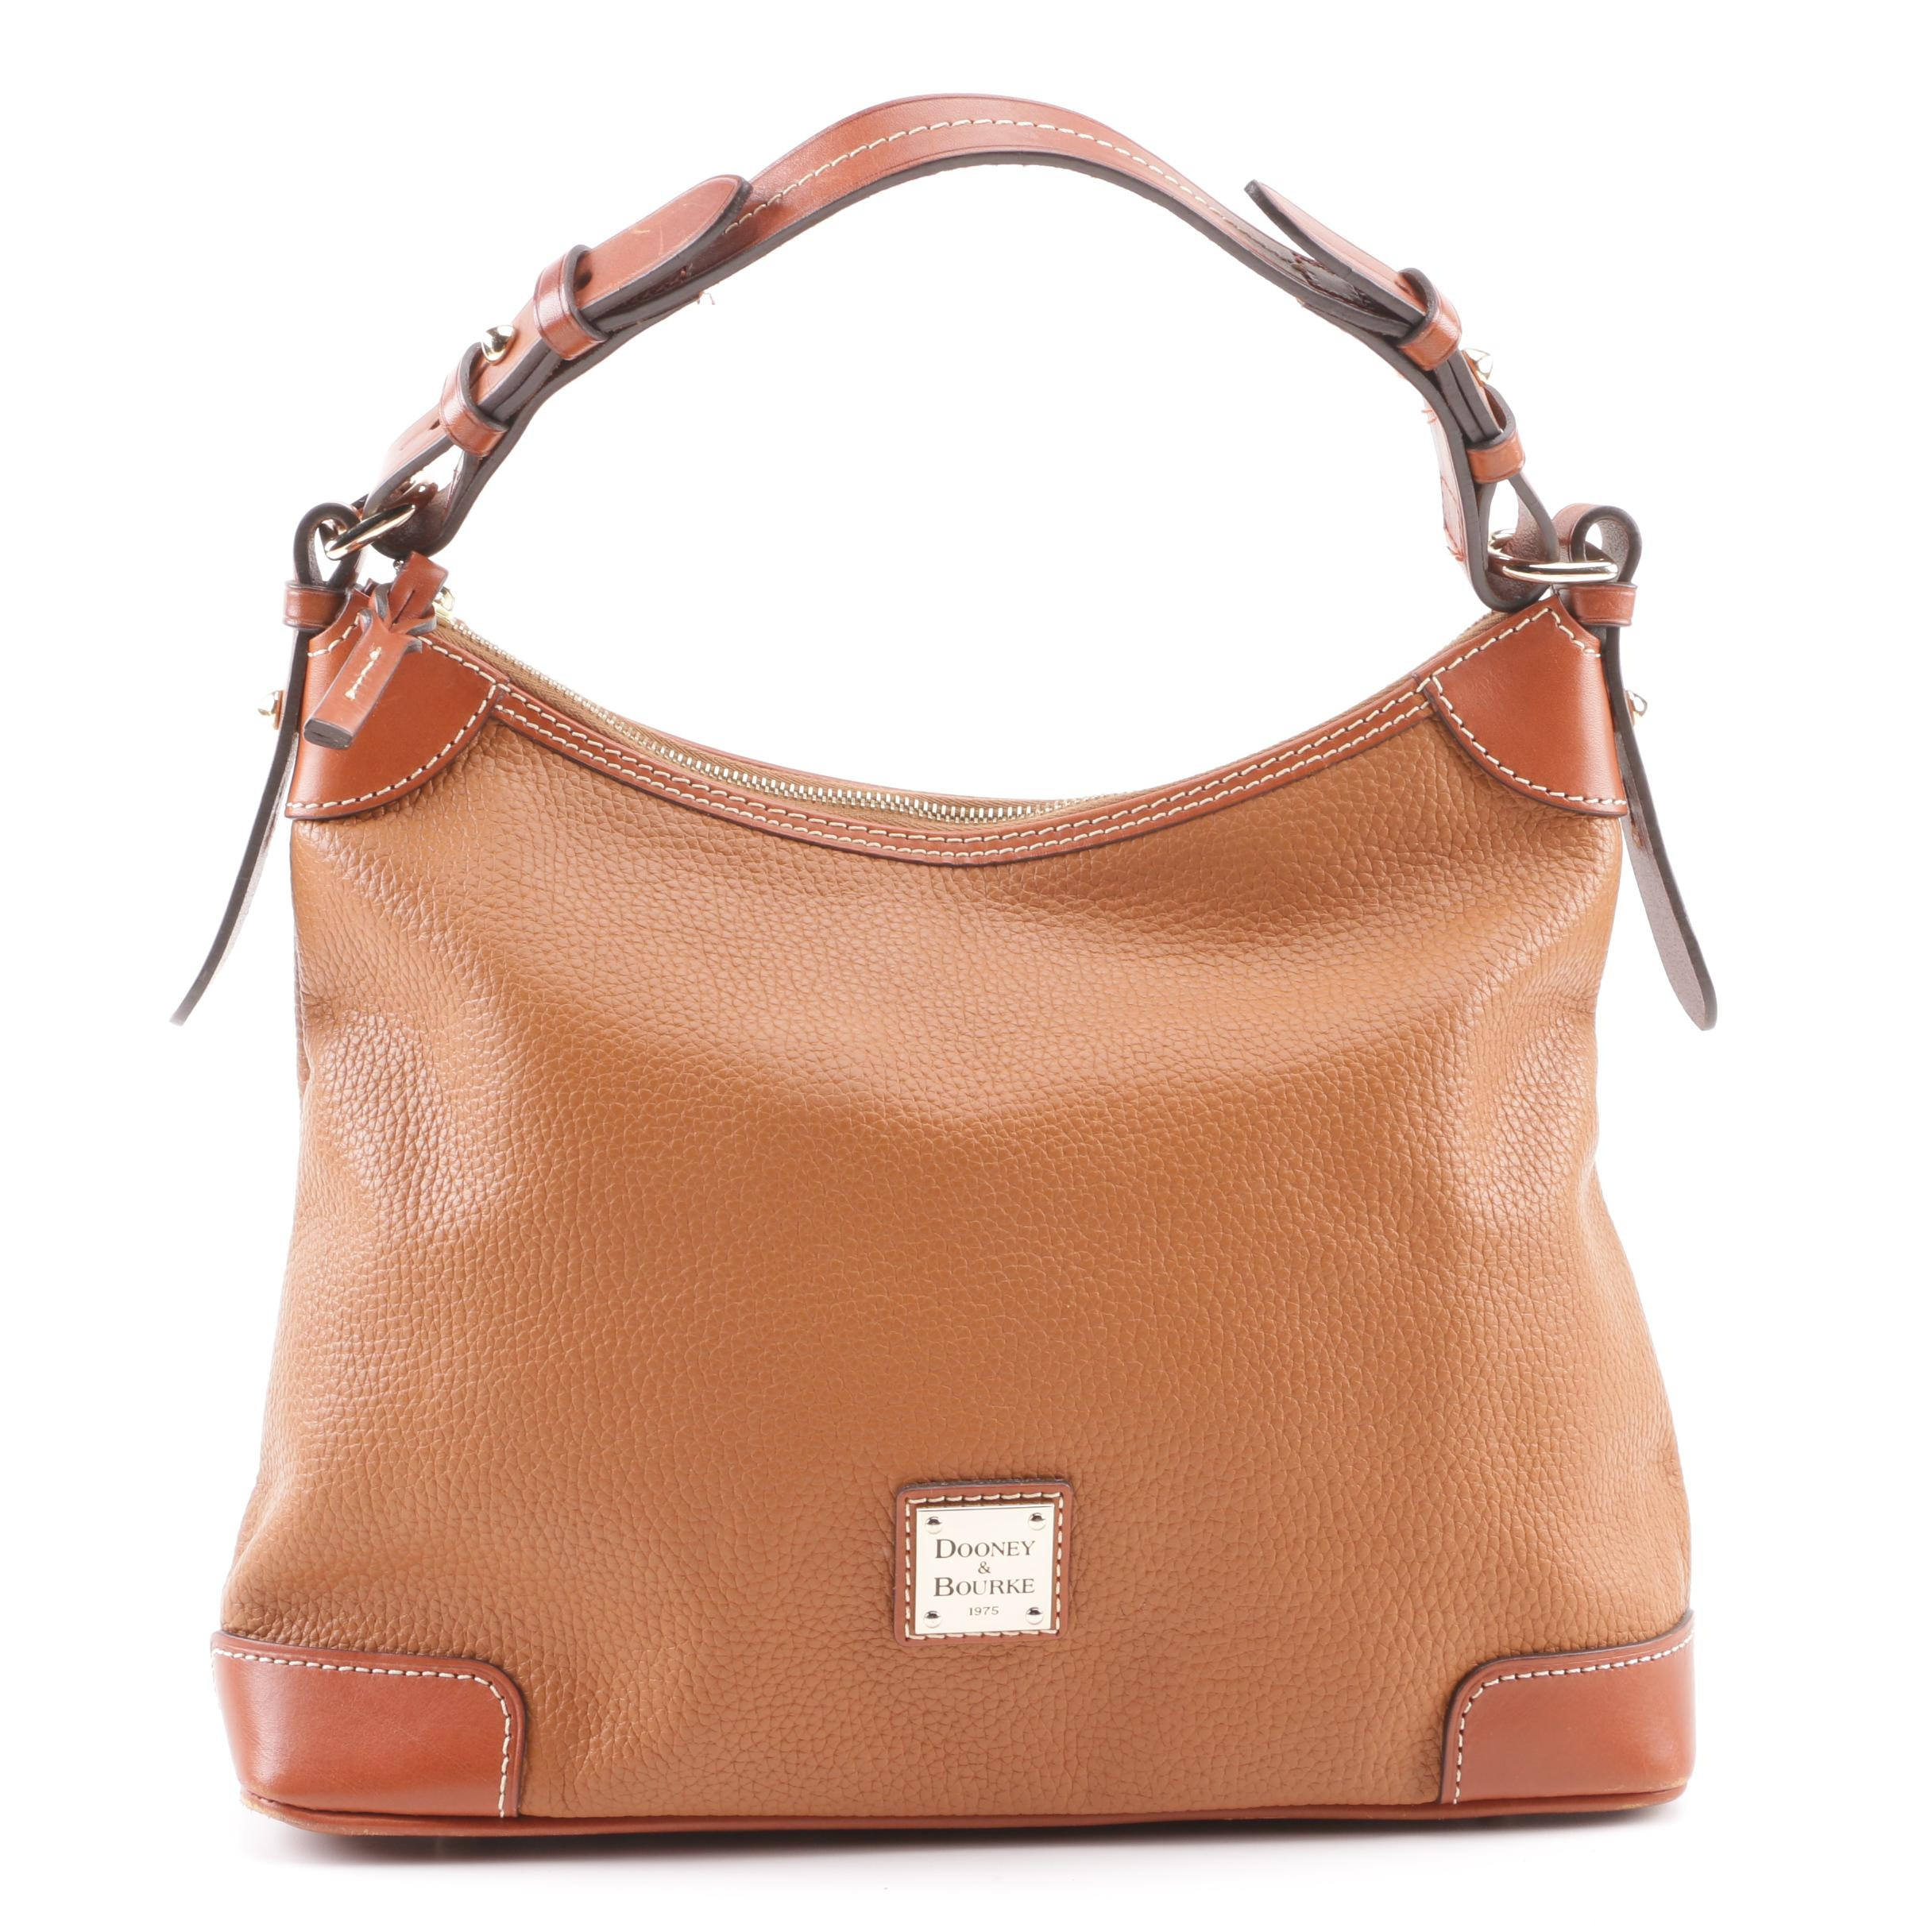 Dooney & Bourke Pebbled Brown Leather Hobo Bag